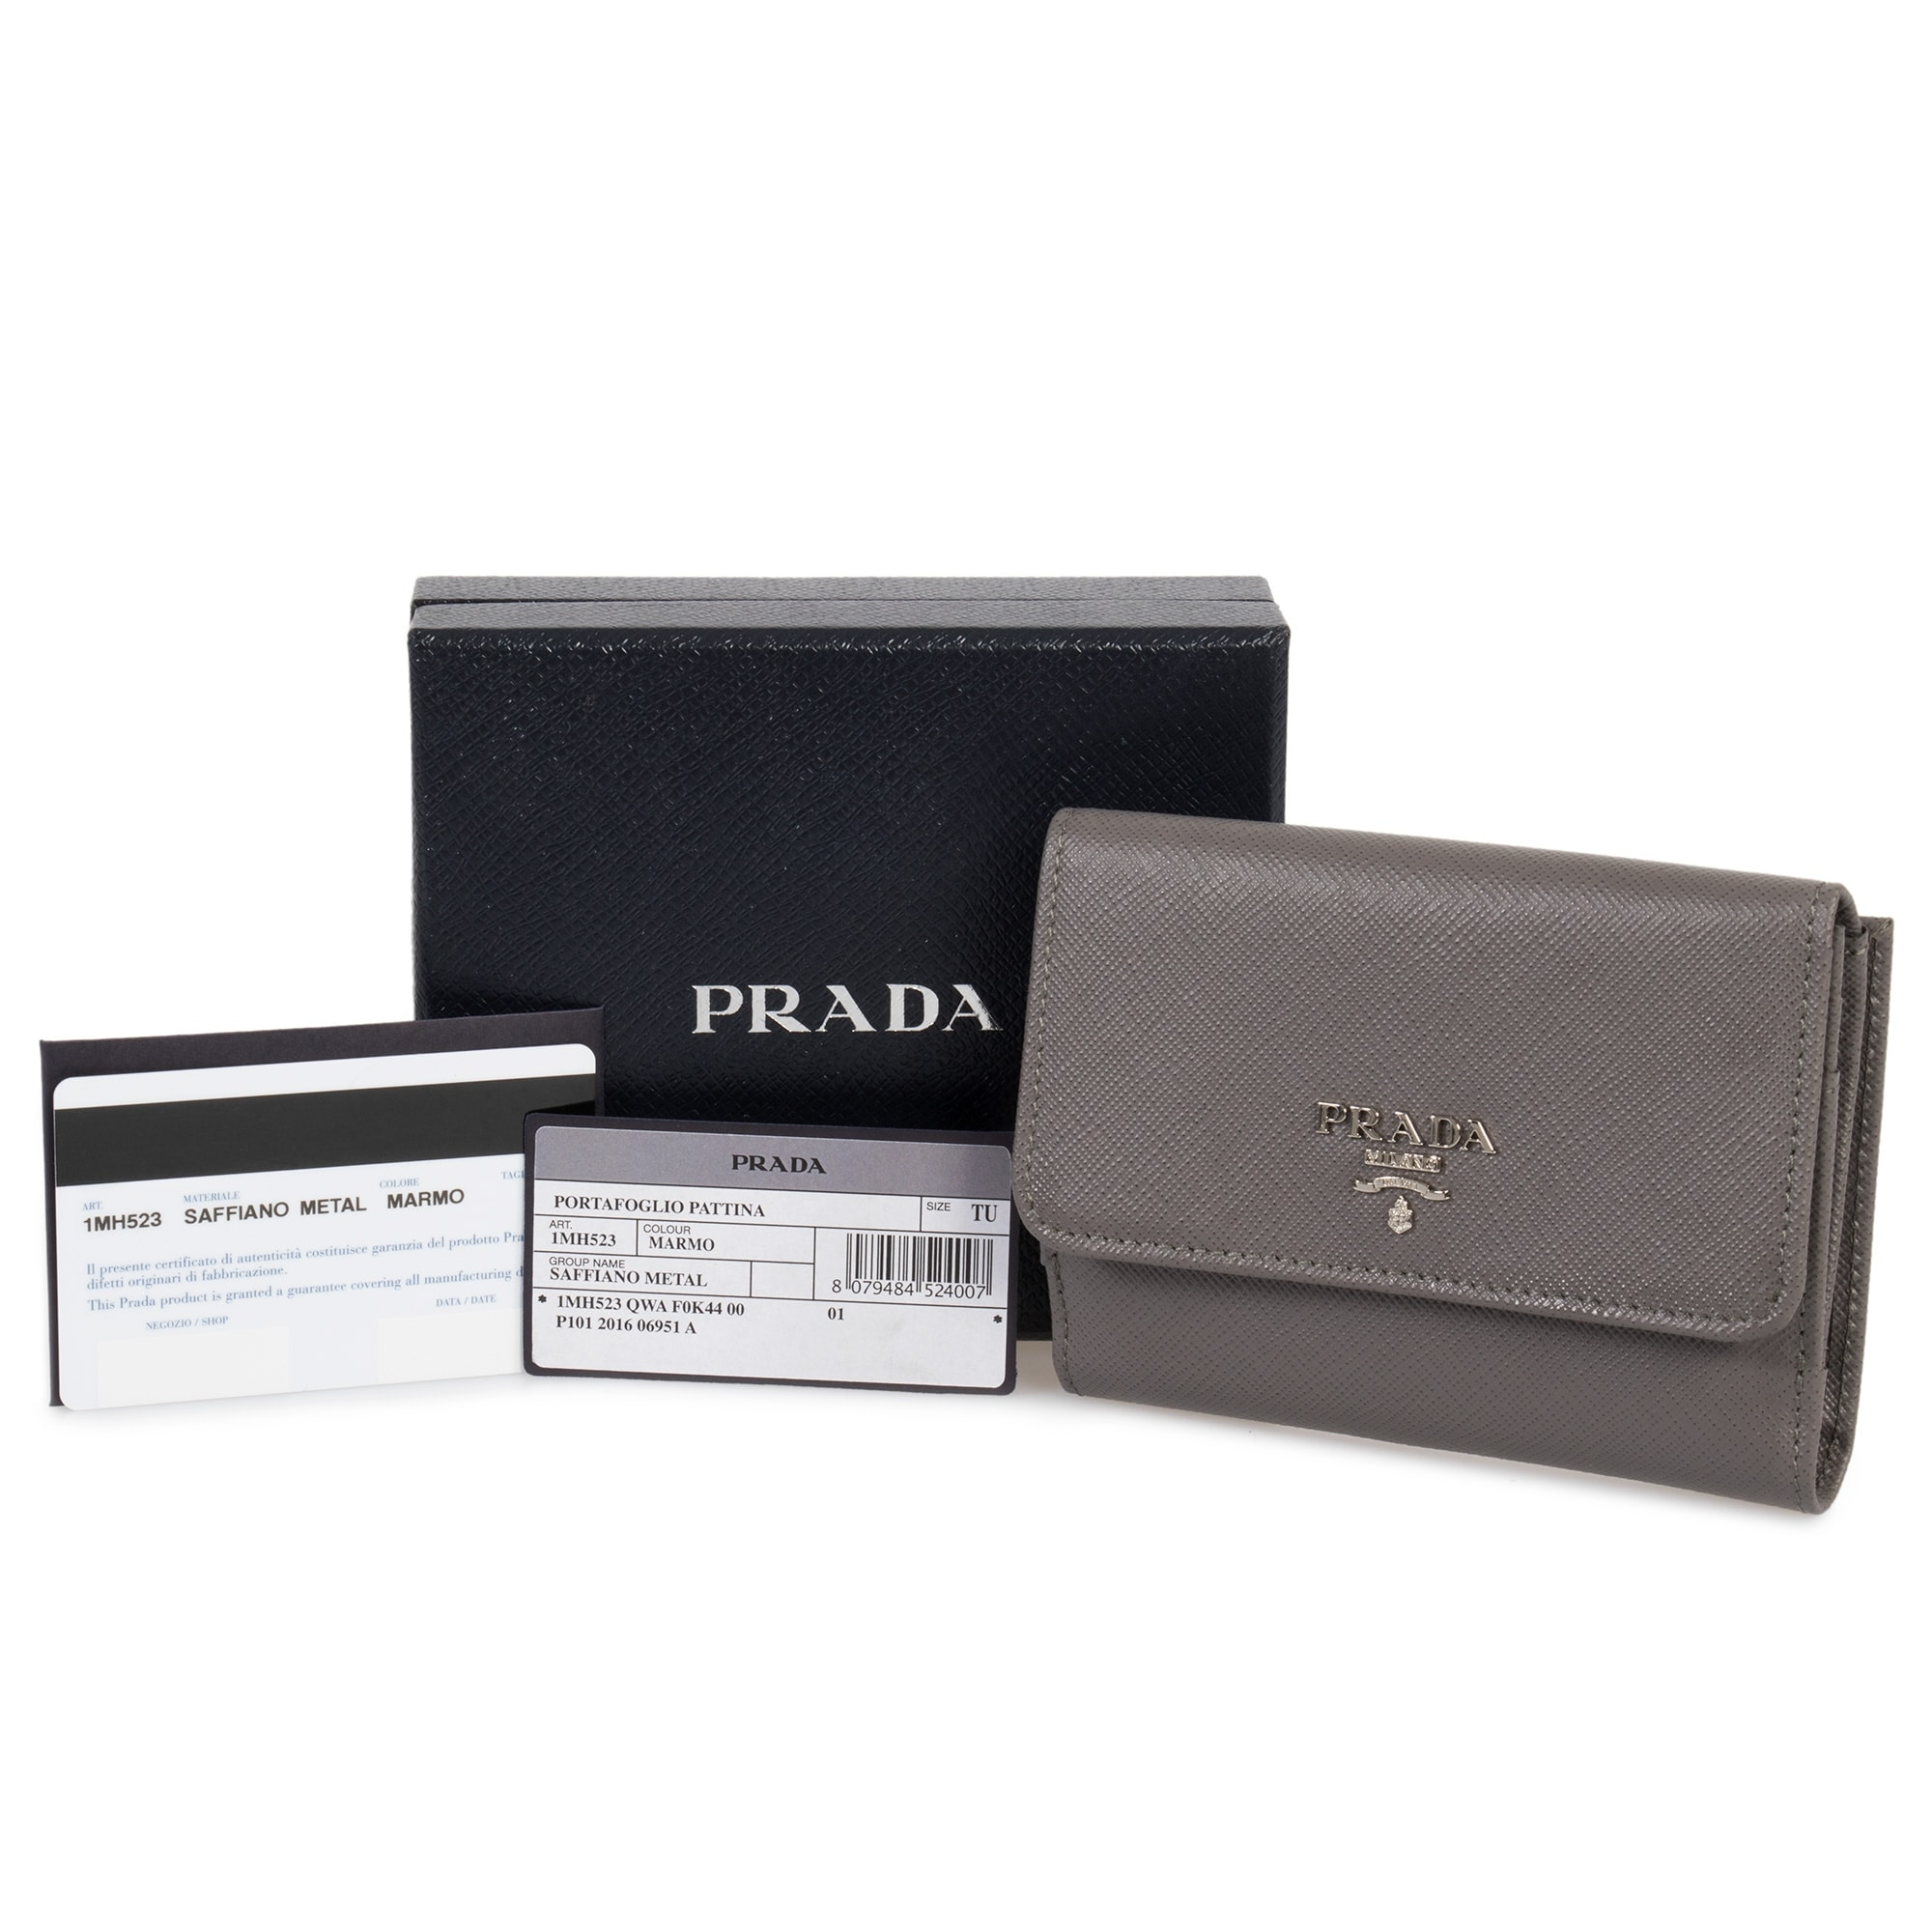 c9b96bab9ca9 Shop Prada Marble Saffiano Leather Flap Wallet 1MH523 QWA F0K44 - Free  Shipping Today - Overstock - 23076853